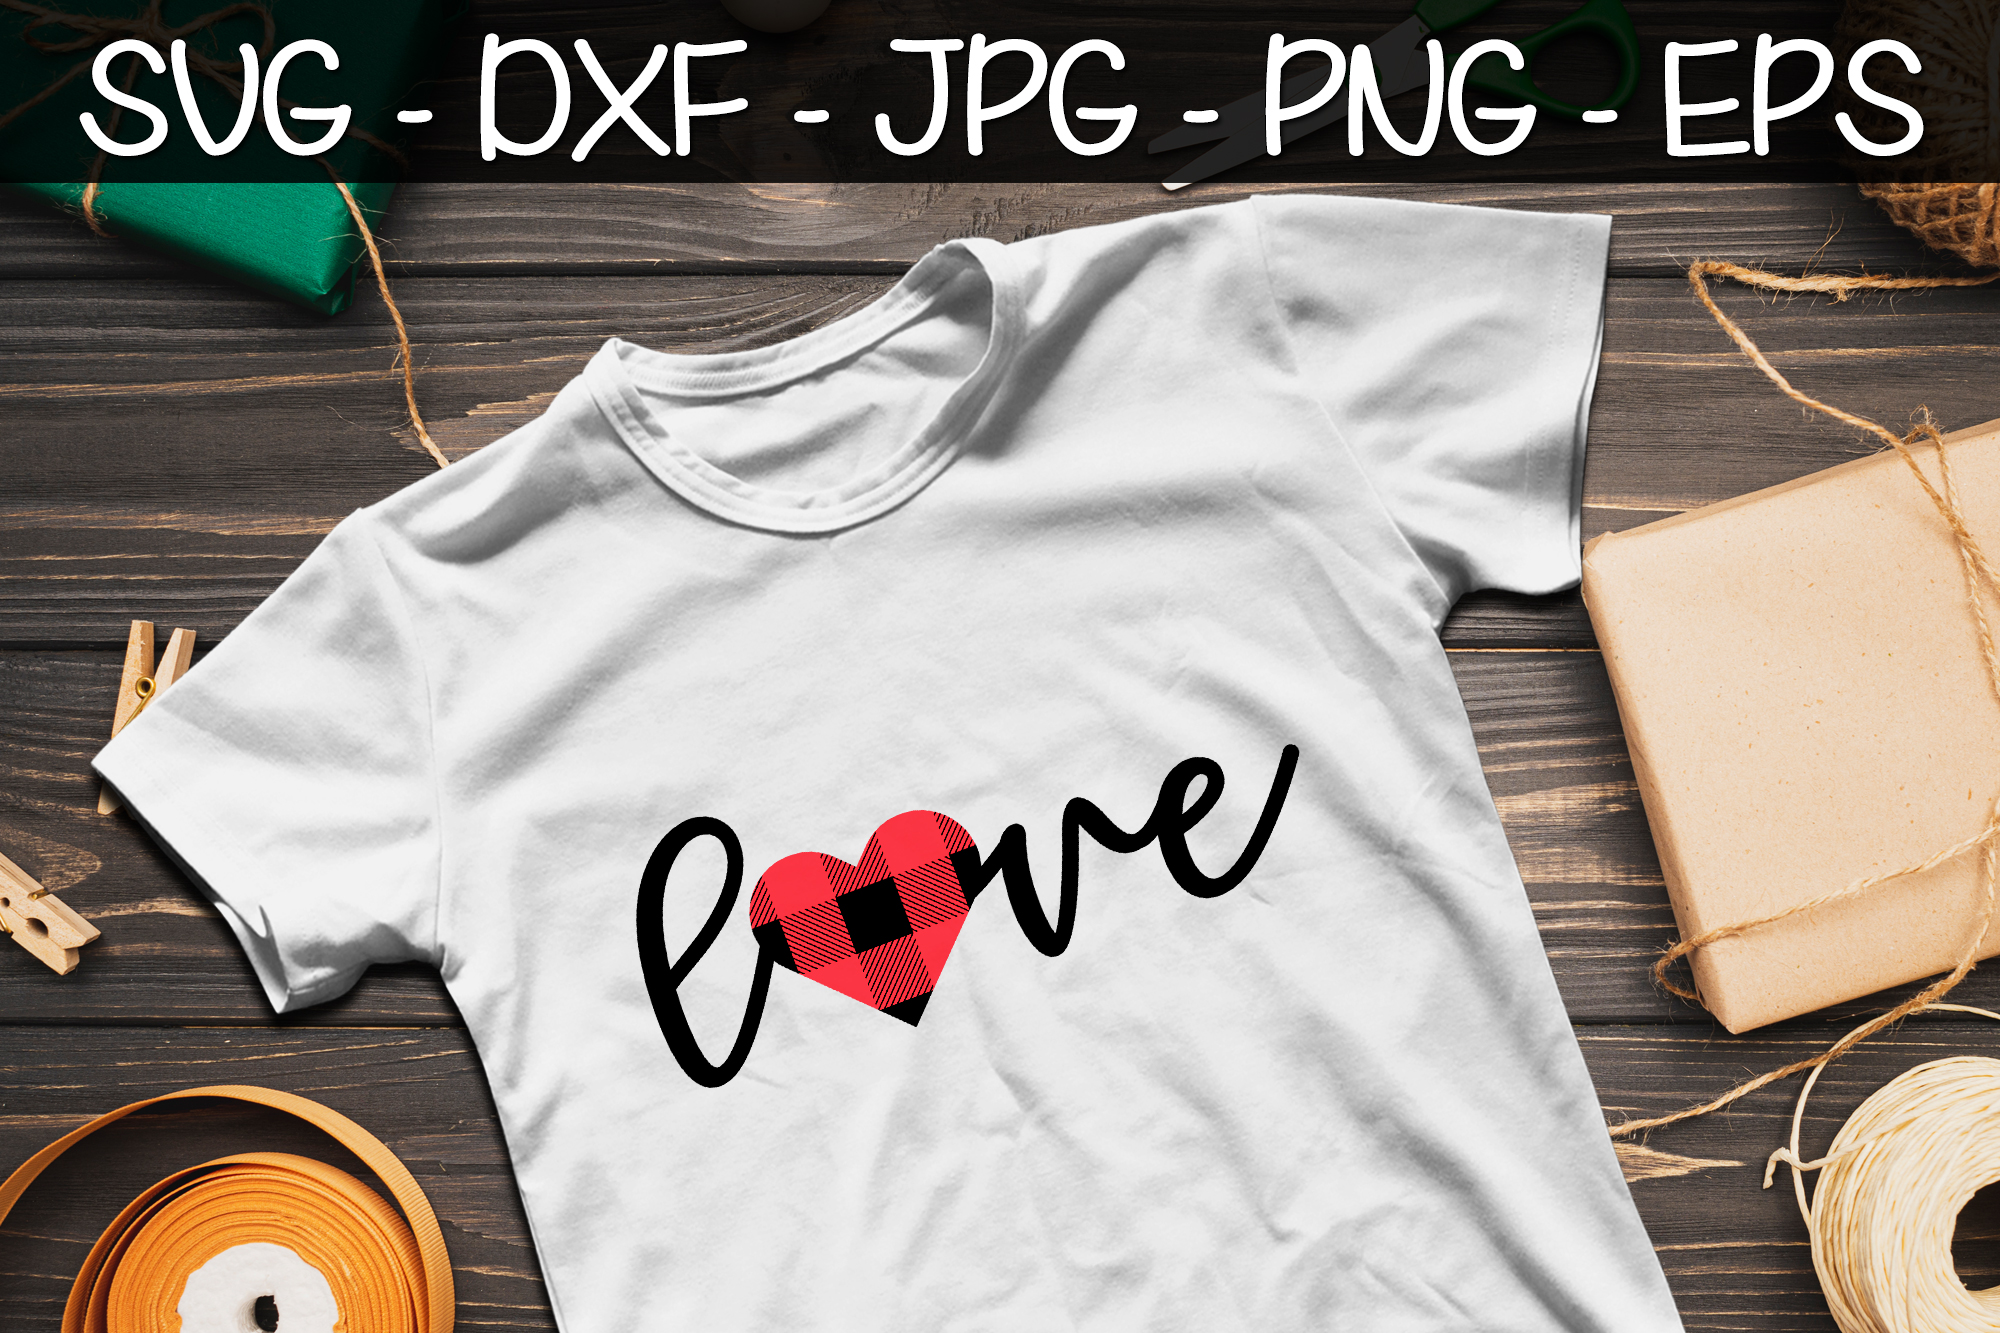 Valentines Day Buffalo Plaid SVG PNG EPS Valentine's Day SVG example image 2